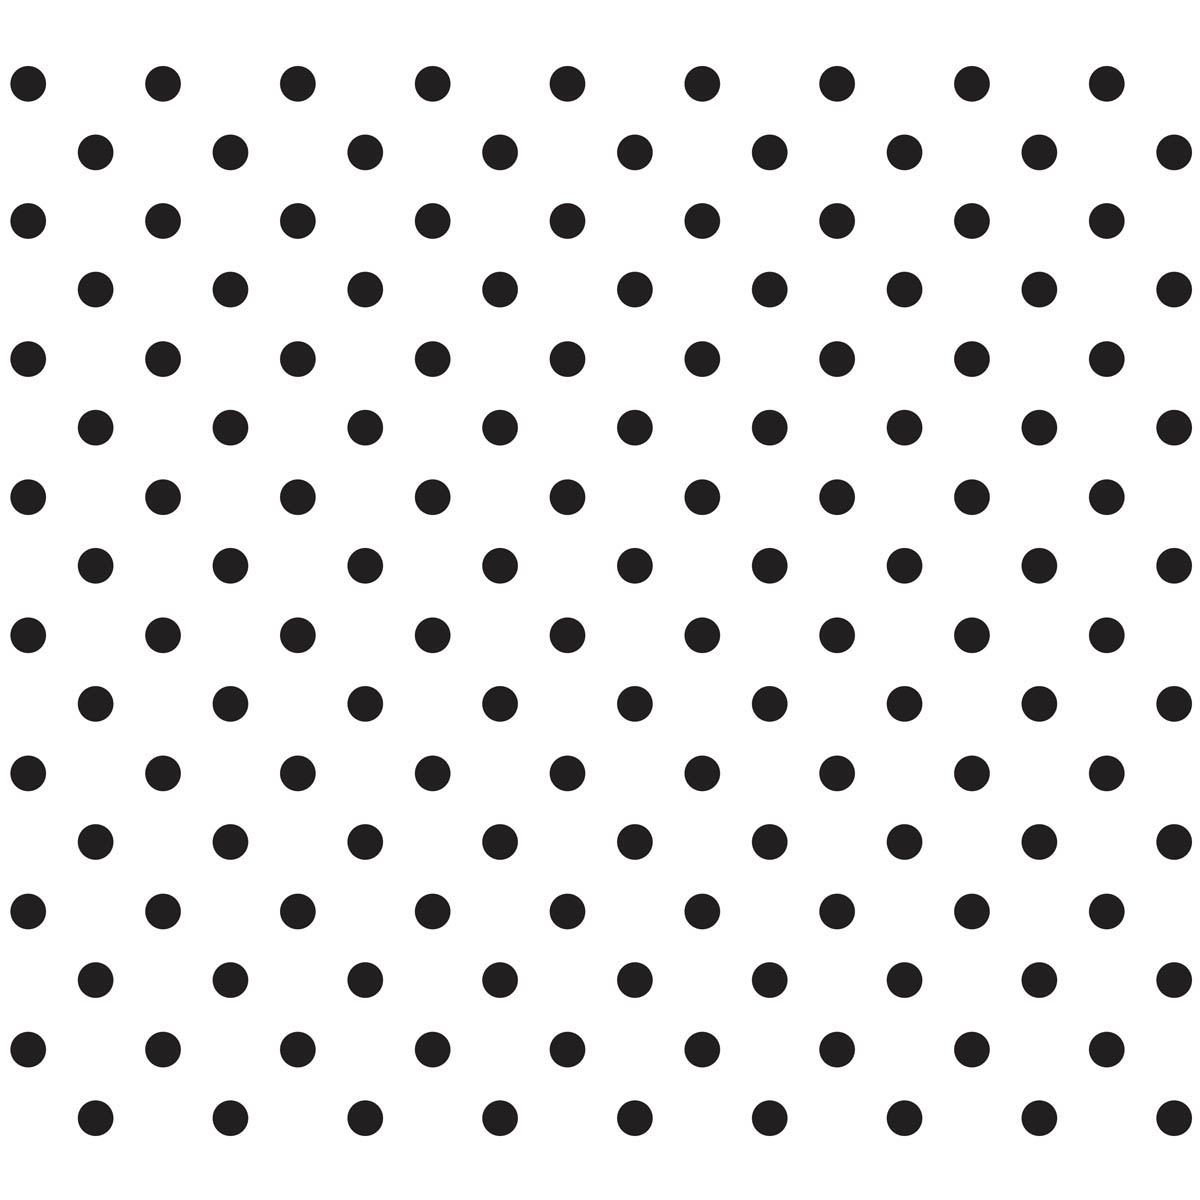 Waverly ® Inspirations Laser Stencils - Accent - Polka Dot, 6